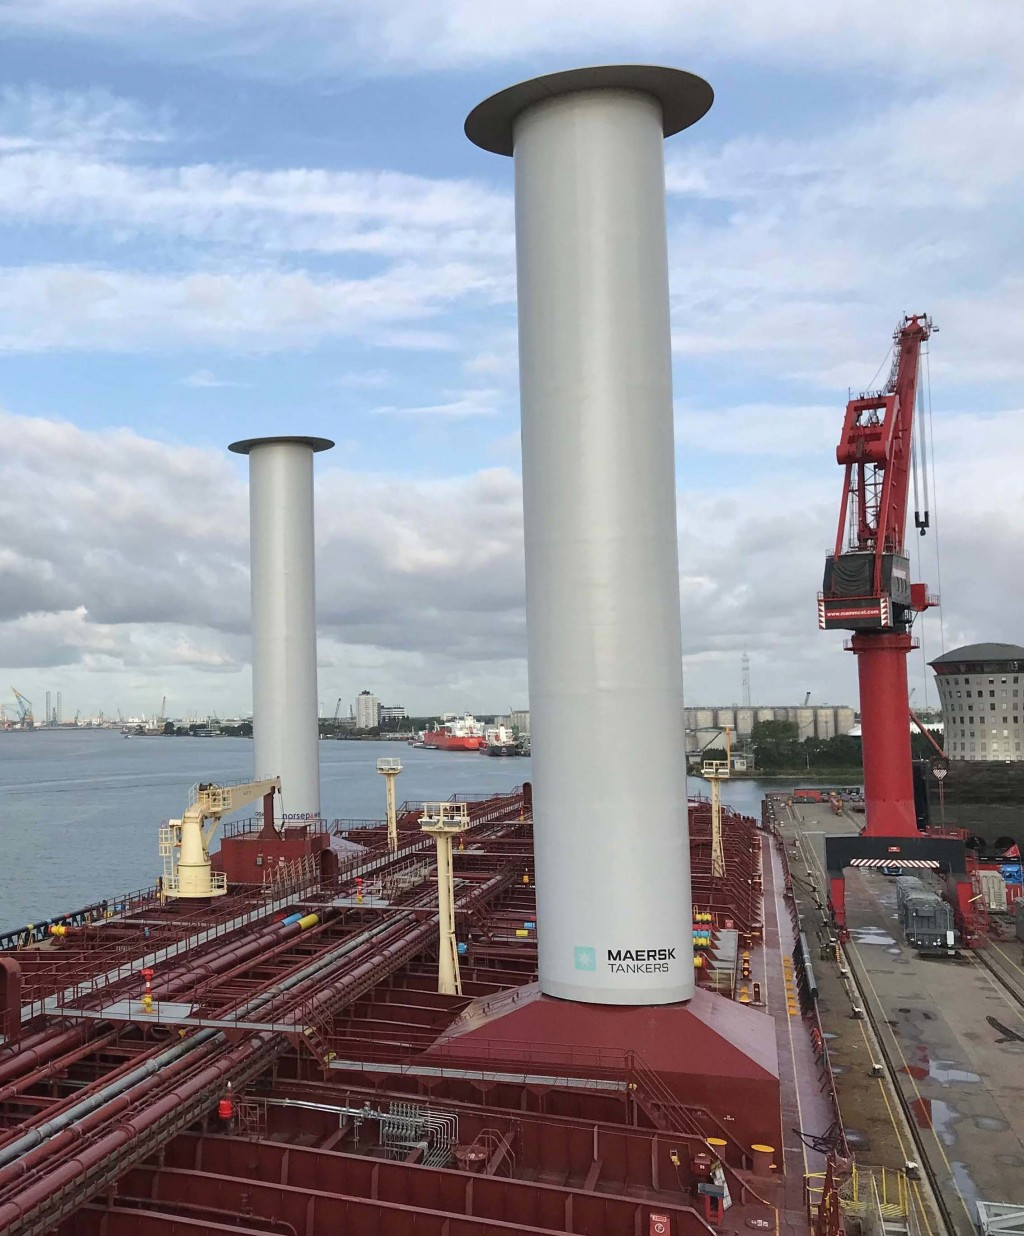 Finnish startup company Norsepower installed its rotor sail technology onto the Maersk Pelican tanker, Aug. 29, 2018, in Rotterdam, Netherlands, the f